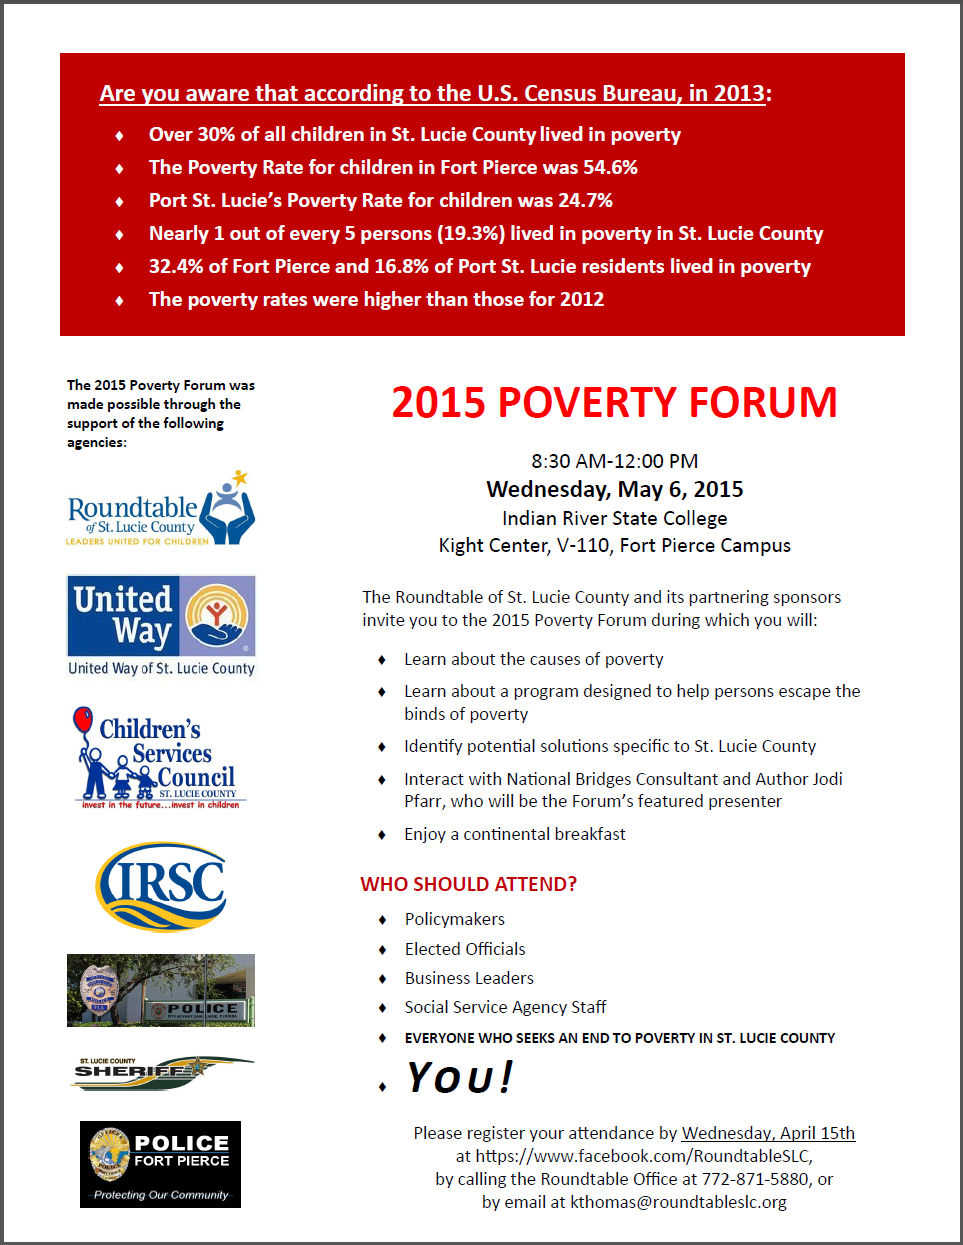 Roundtable of Saint Lucie County - Poverty Forum